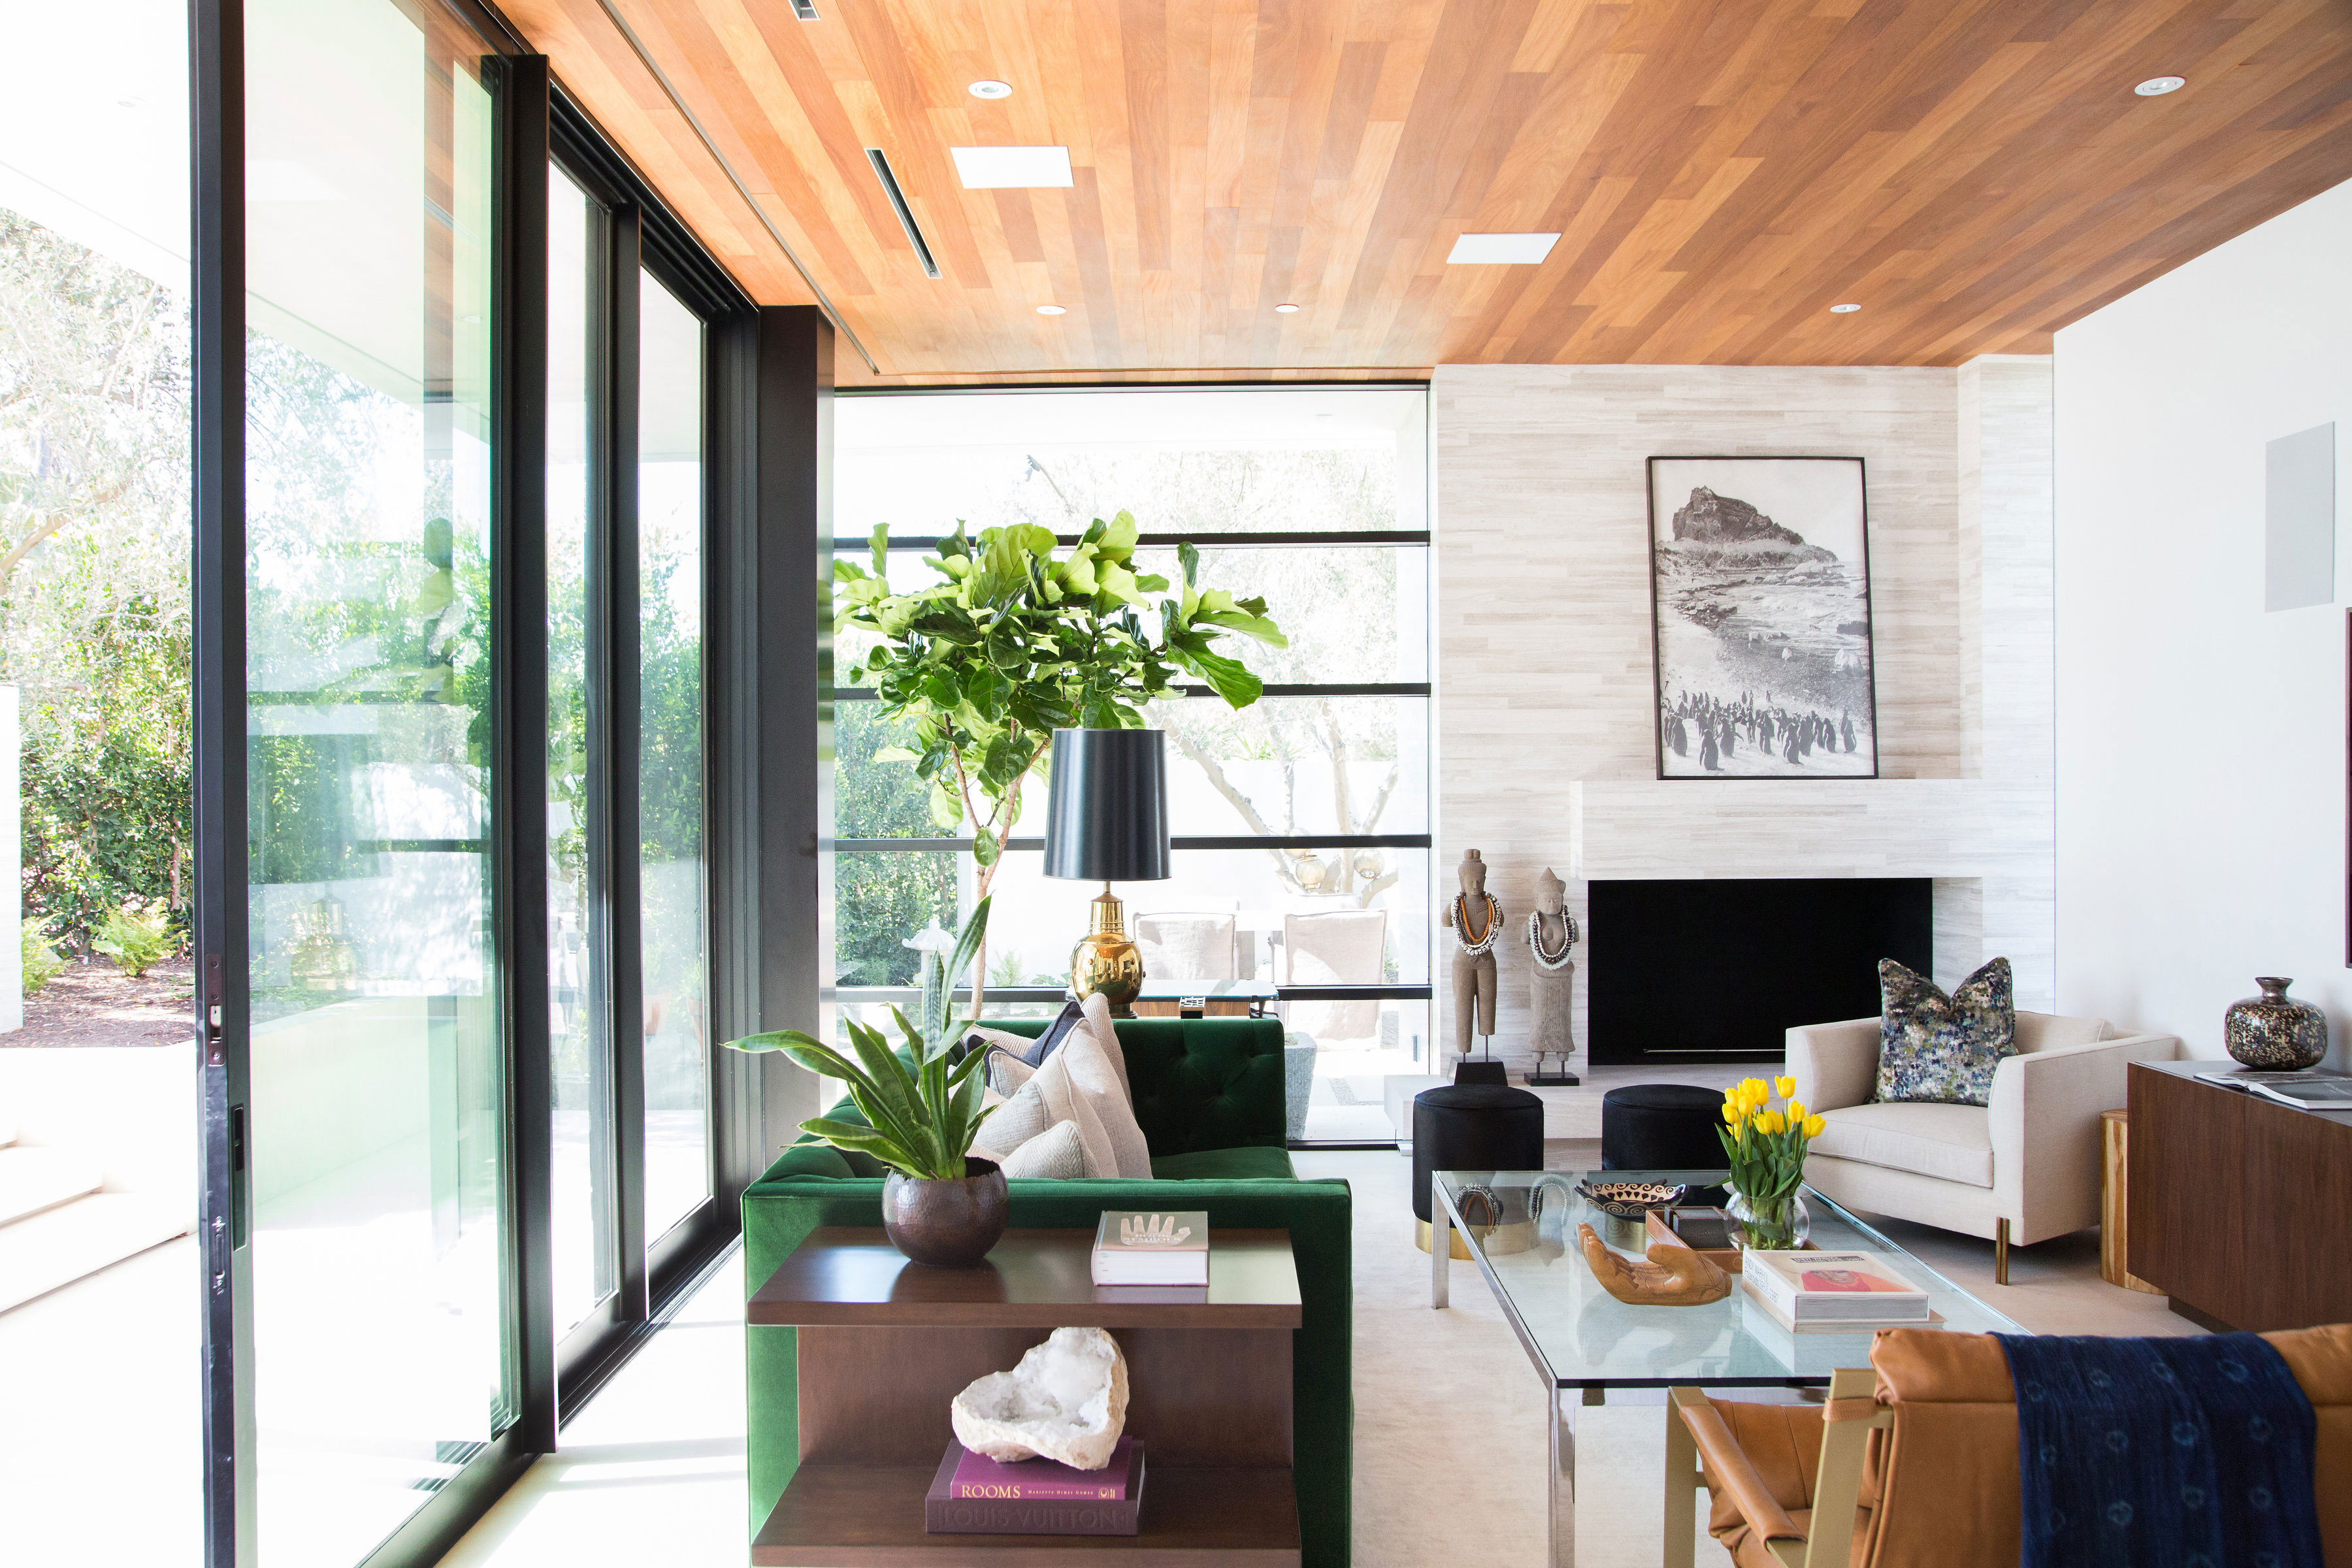 blackband_design_project_bel-air_sunken_living_room_13